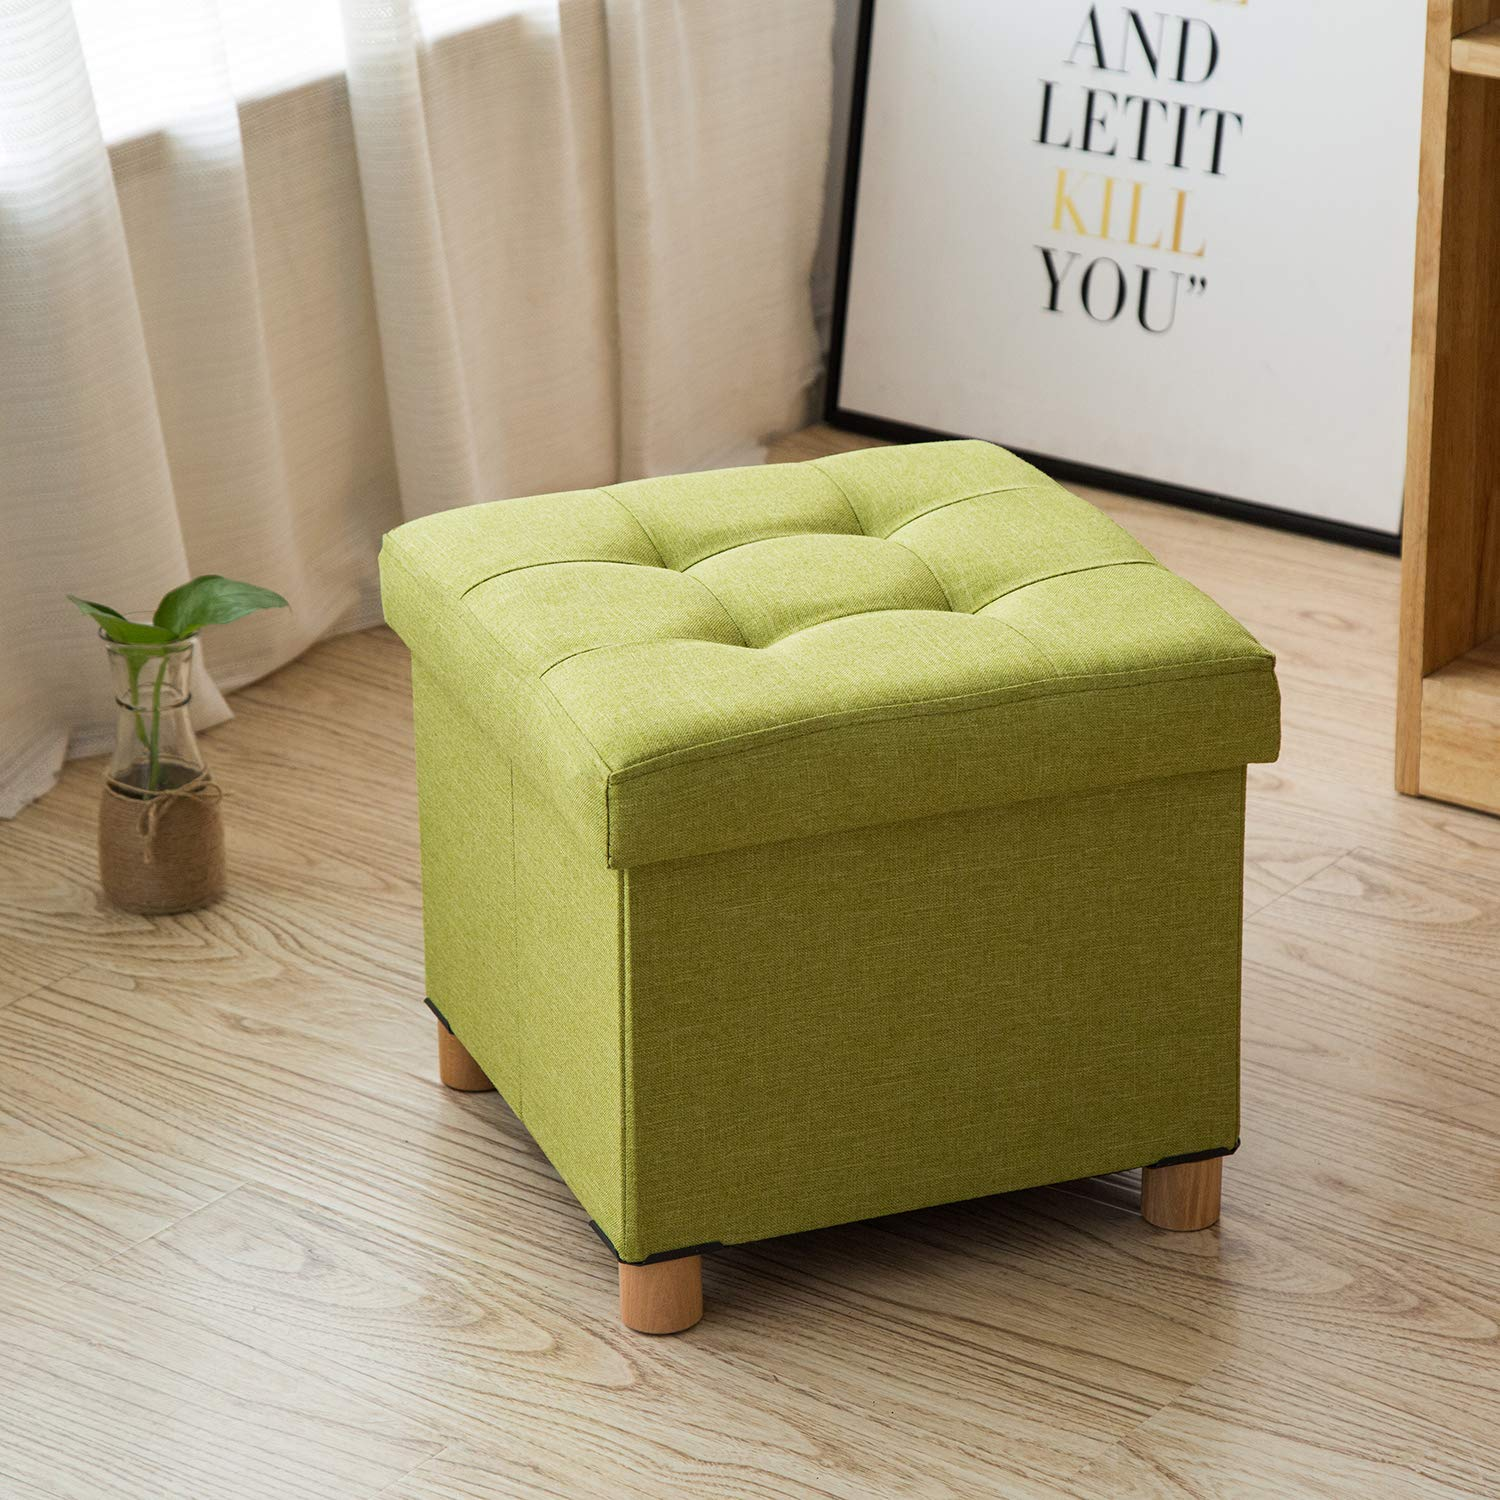 Cassilia Foldable Storage Ottoman Square Cube Coffee Table Multipurpose  Footrest Stool for Bedroom and Living Room Storage (Green Ottoman)